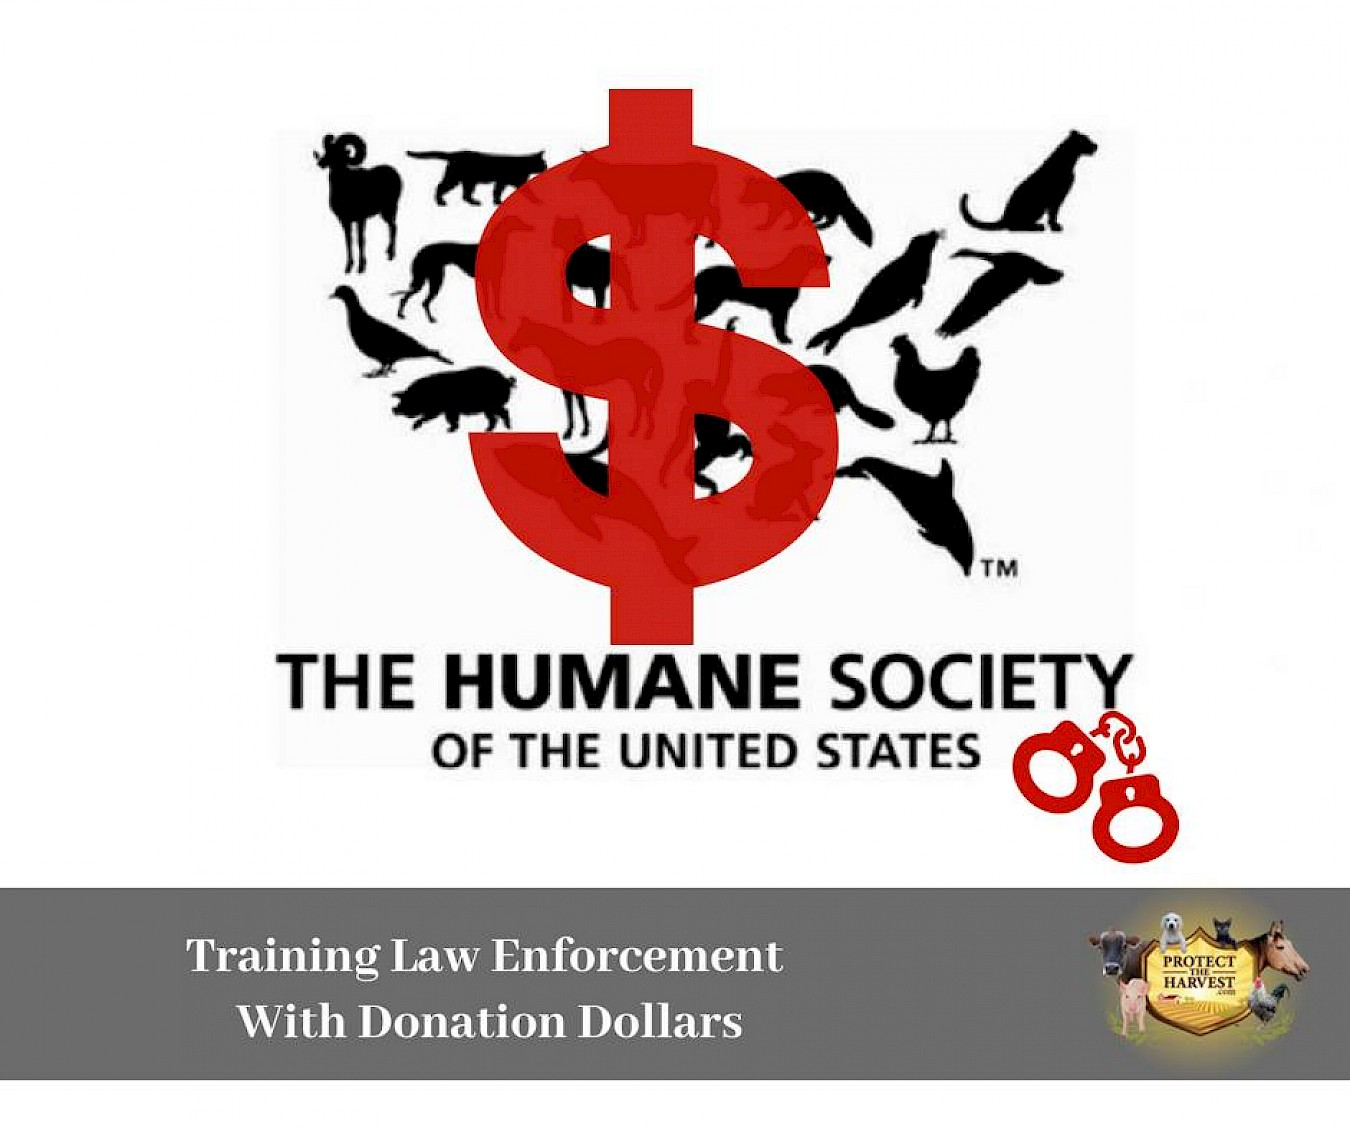 Money Donated To HSUS Is Used To Train Law Enforcement And To Meddle In Environmental Issues